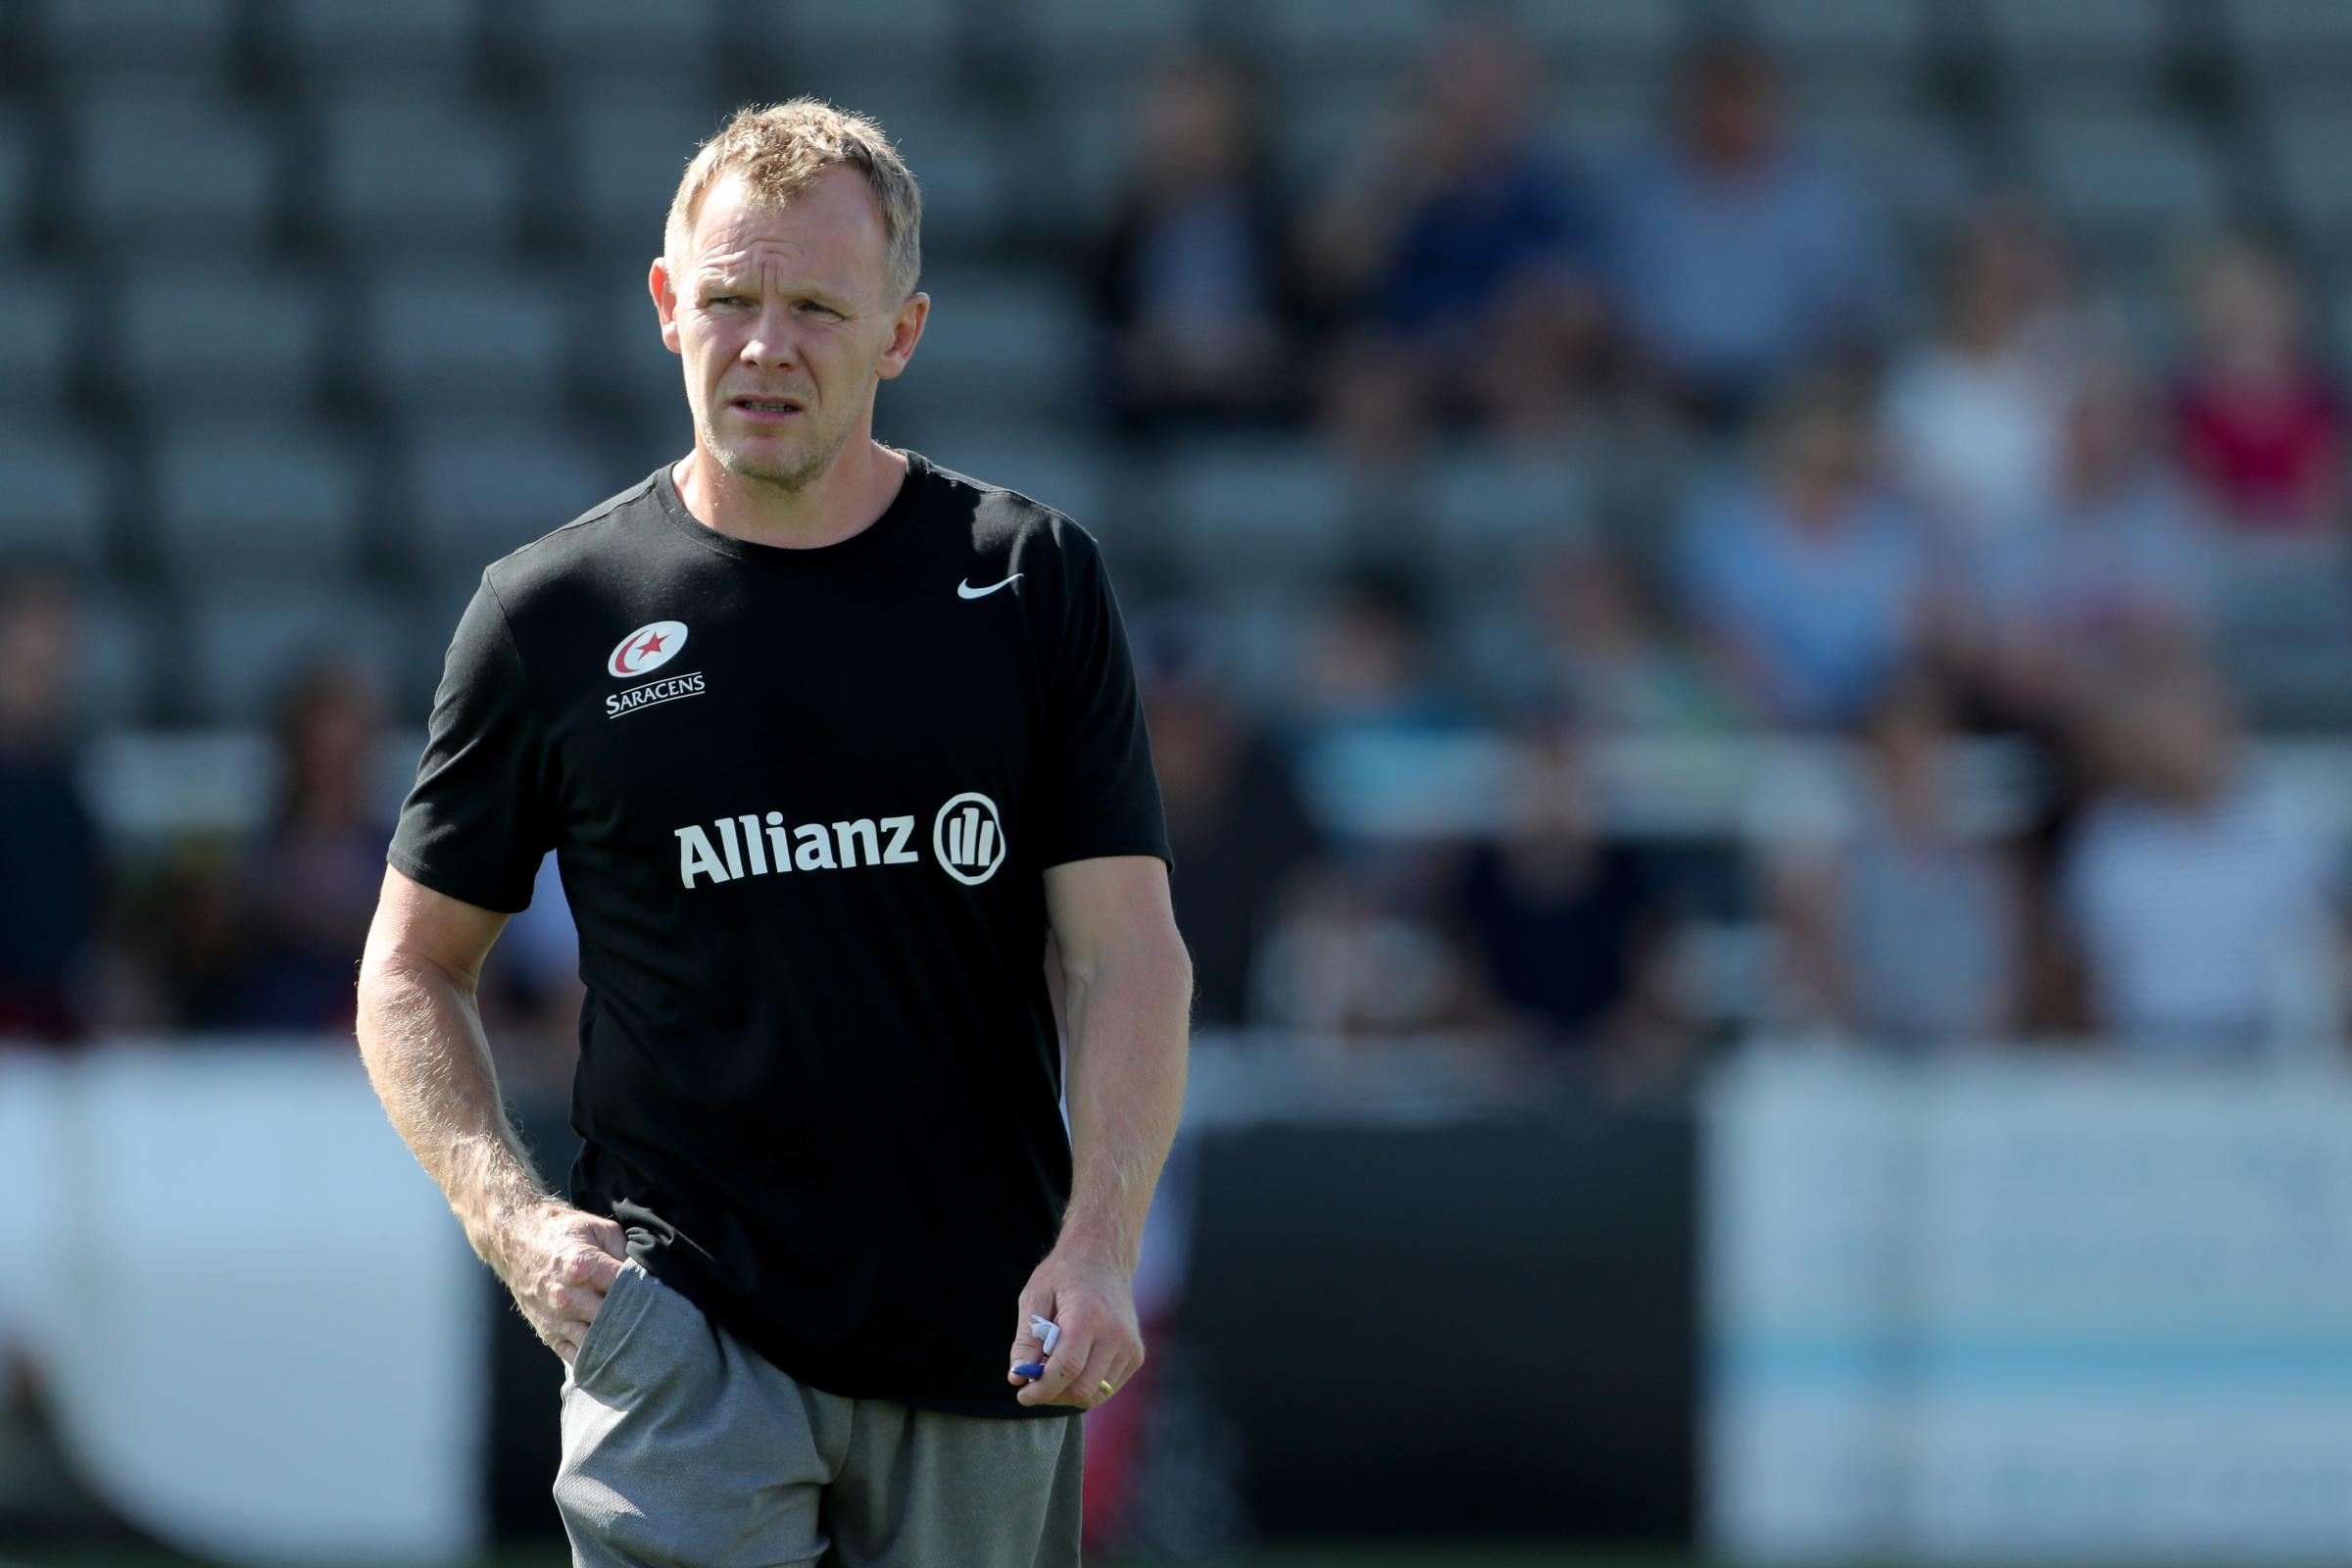 Saracens director of rugby Mark McCall wants his side to make up for last season's European disappointment (Richard Sellers/PA)